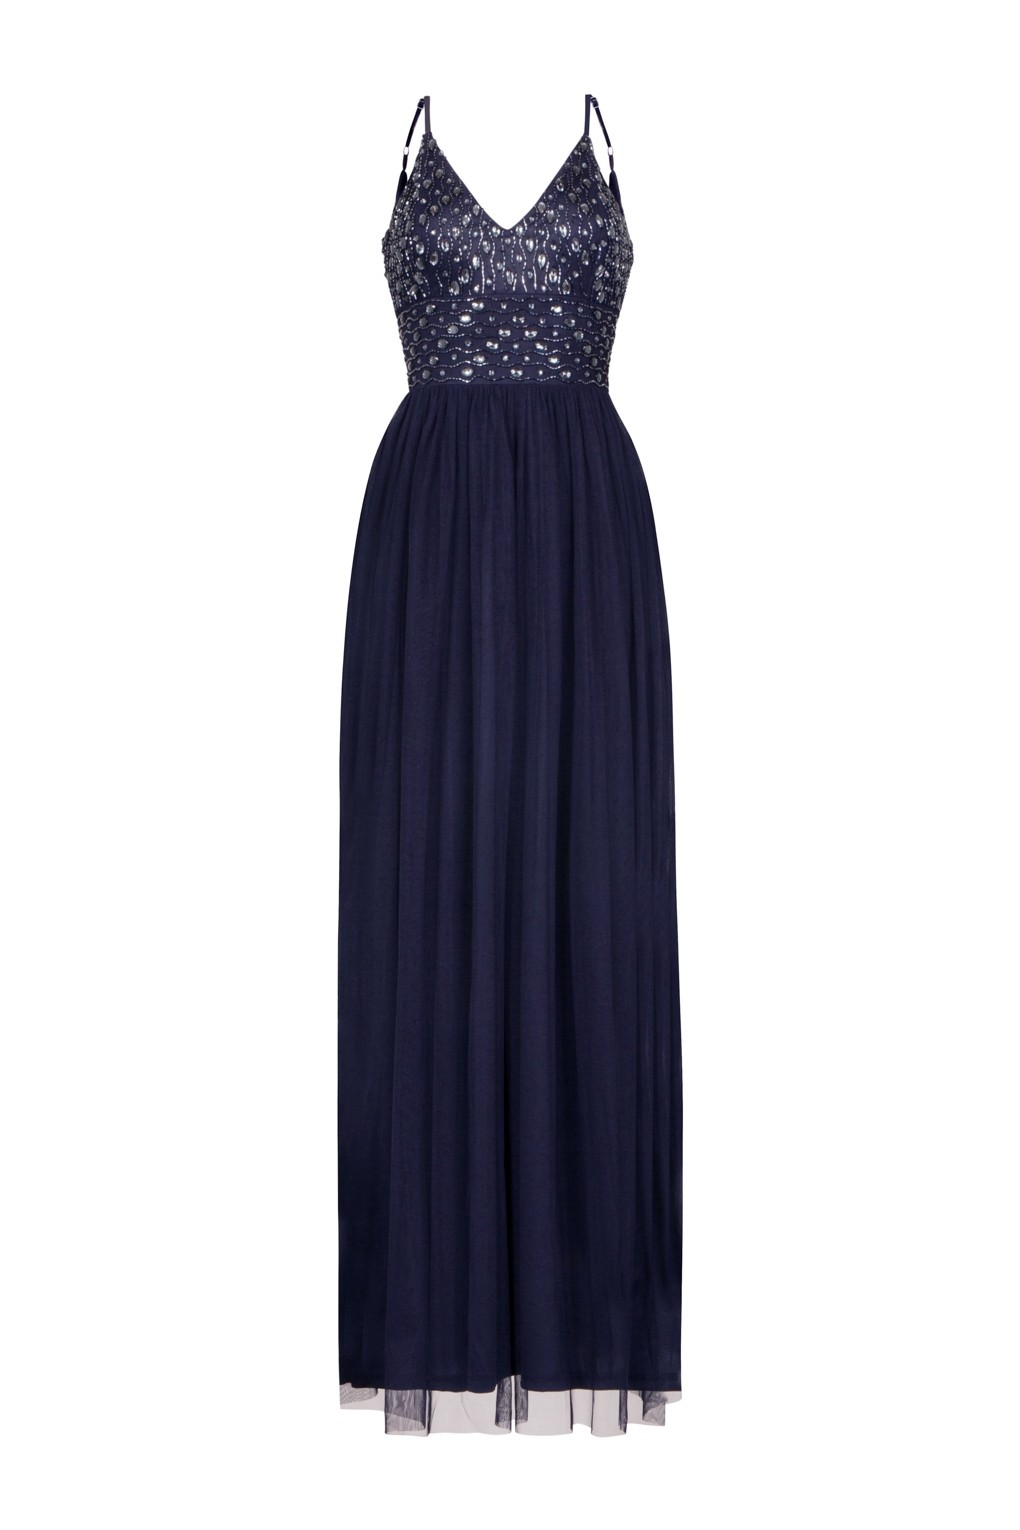 5d074a03f31 LACE   BEADS MAEVE NAVY EMBELLISHED MAXI DRESS